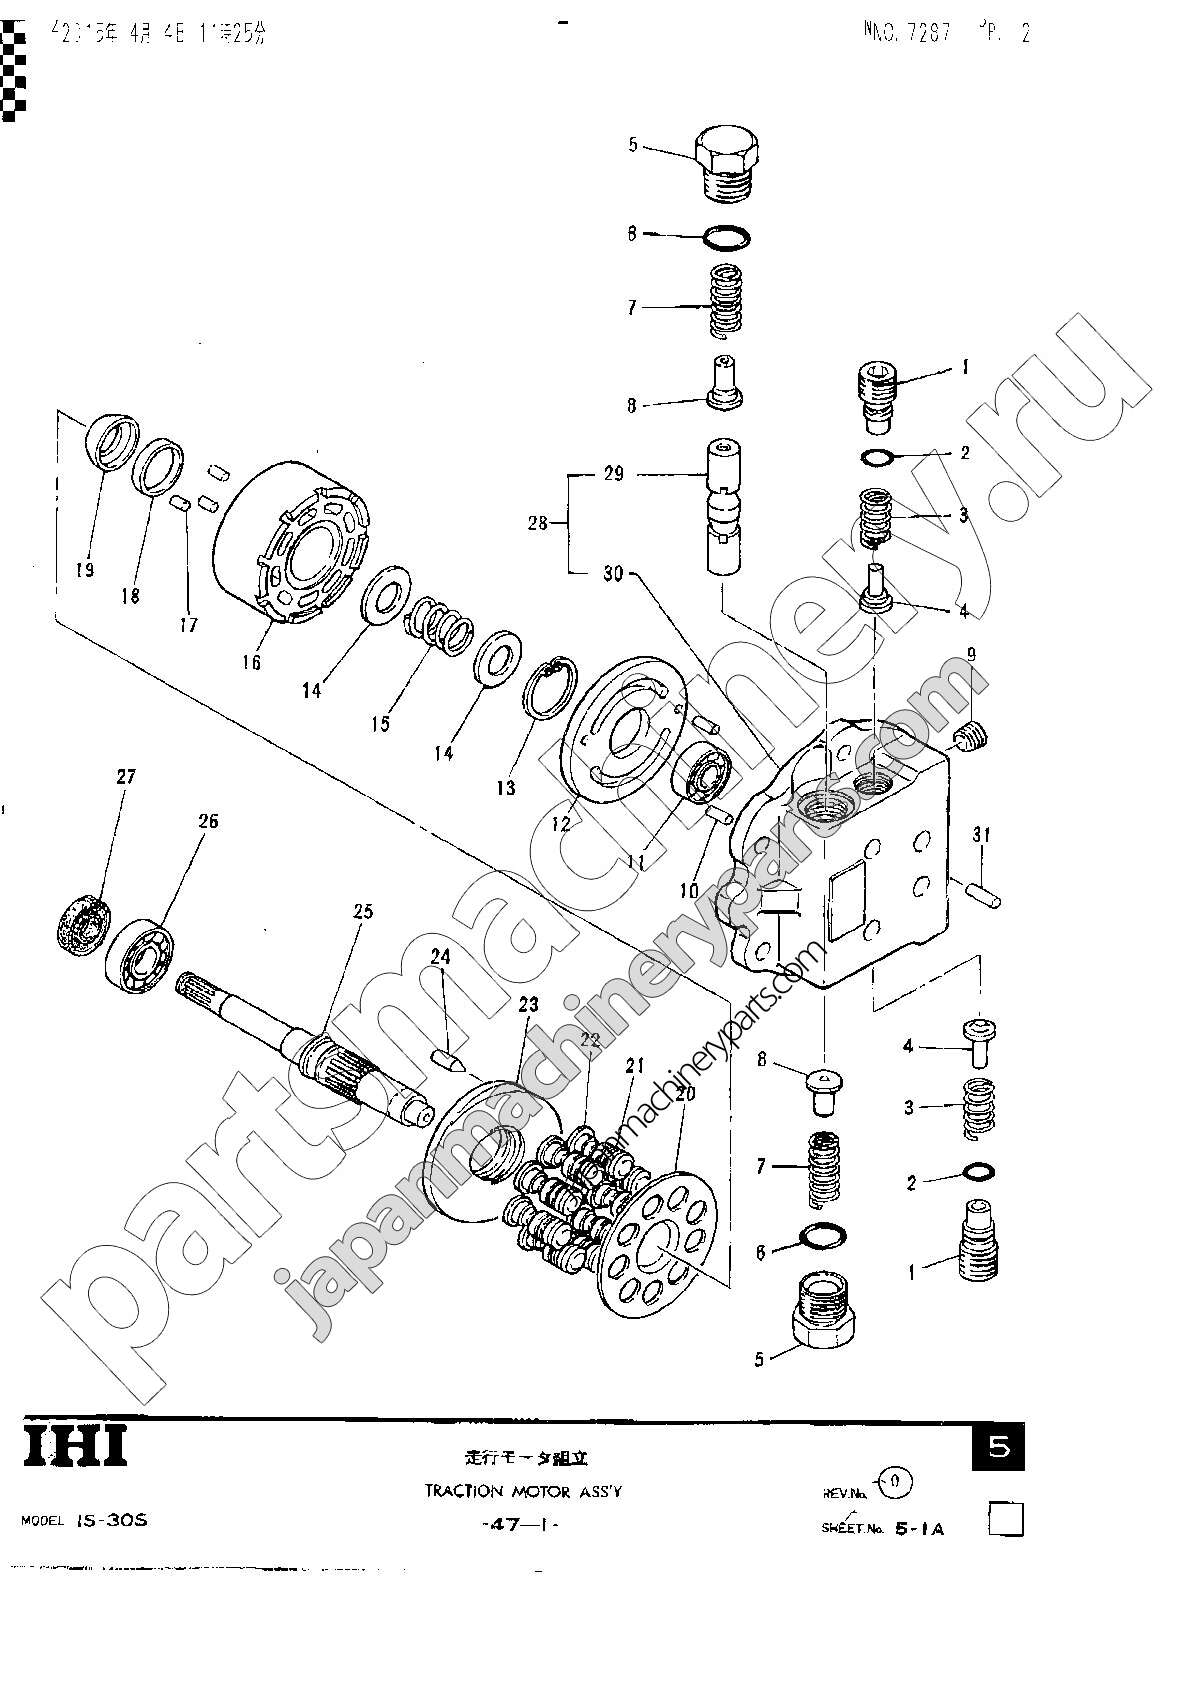 15BC8 Ihi Excavator Engine Parts Manual   Wiring LibraryWiring Library